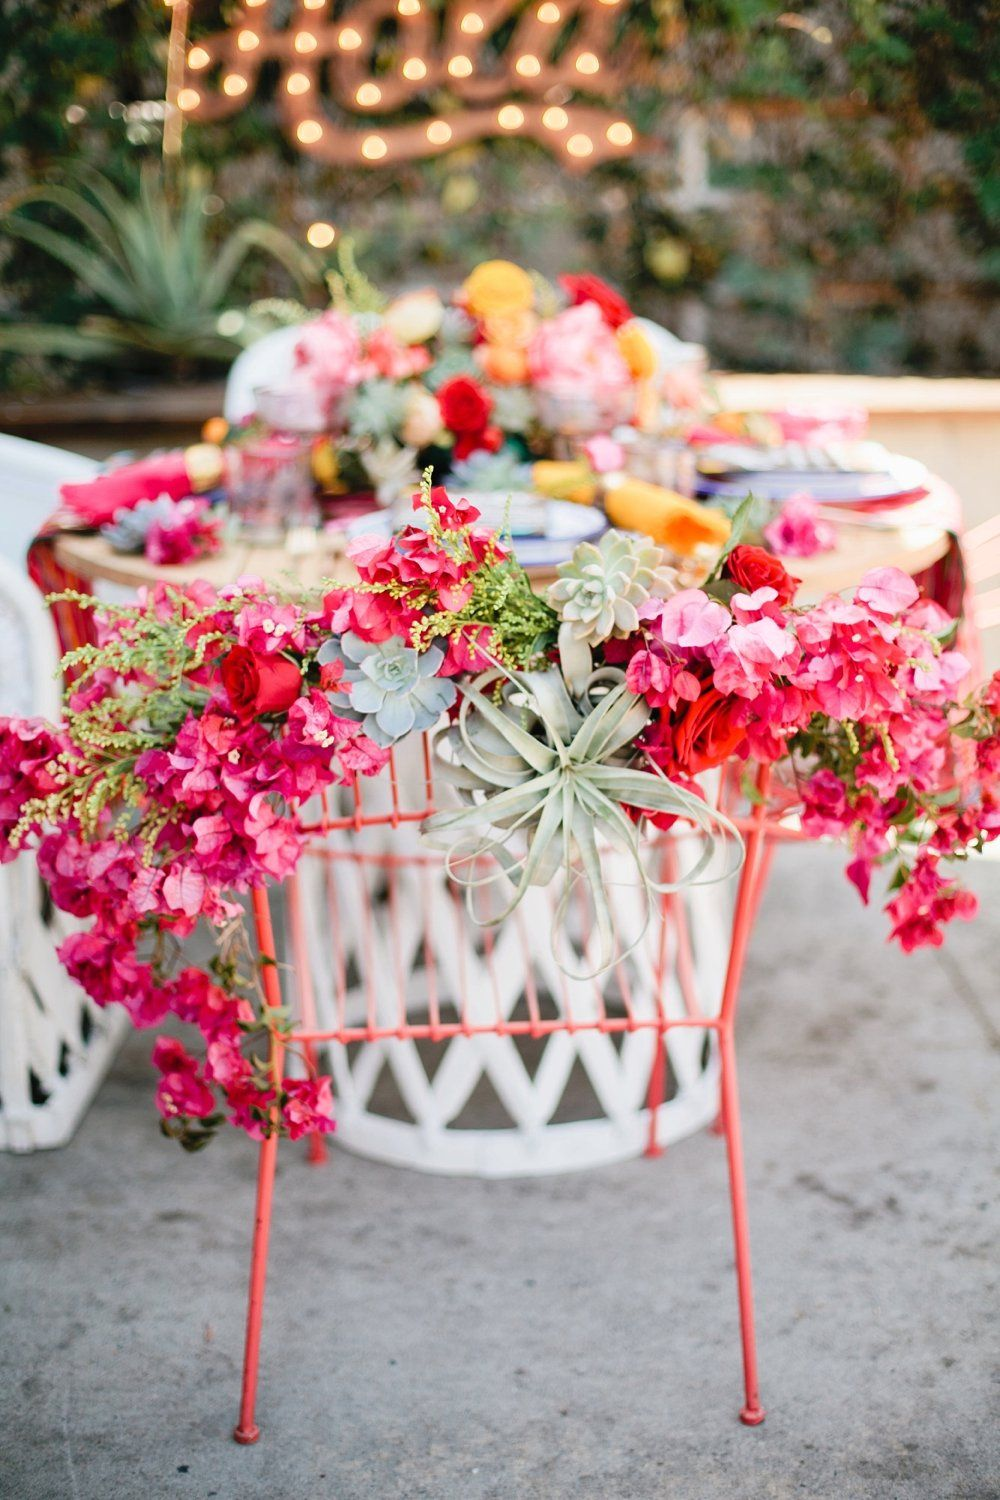 CINCO DE MAYO MEXICAN INSPIRED WEDDING INSPIRATION DECORATION STYLING